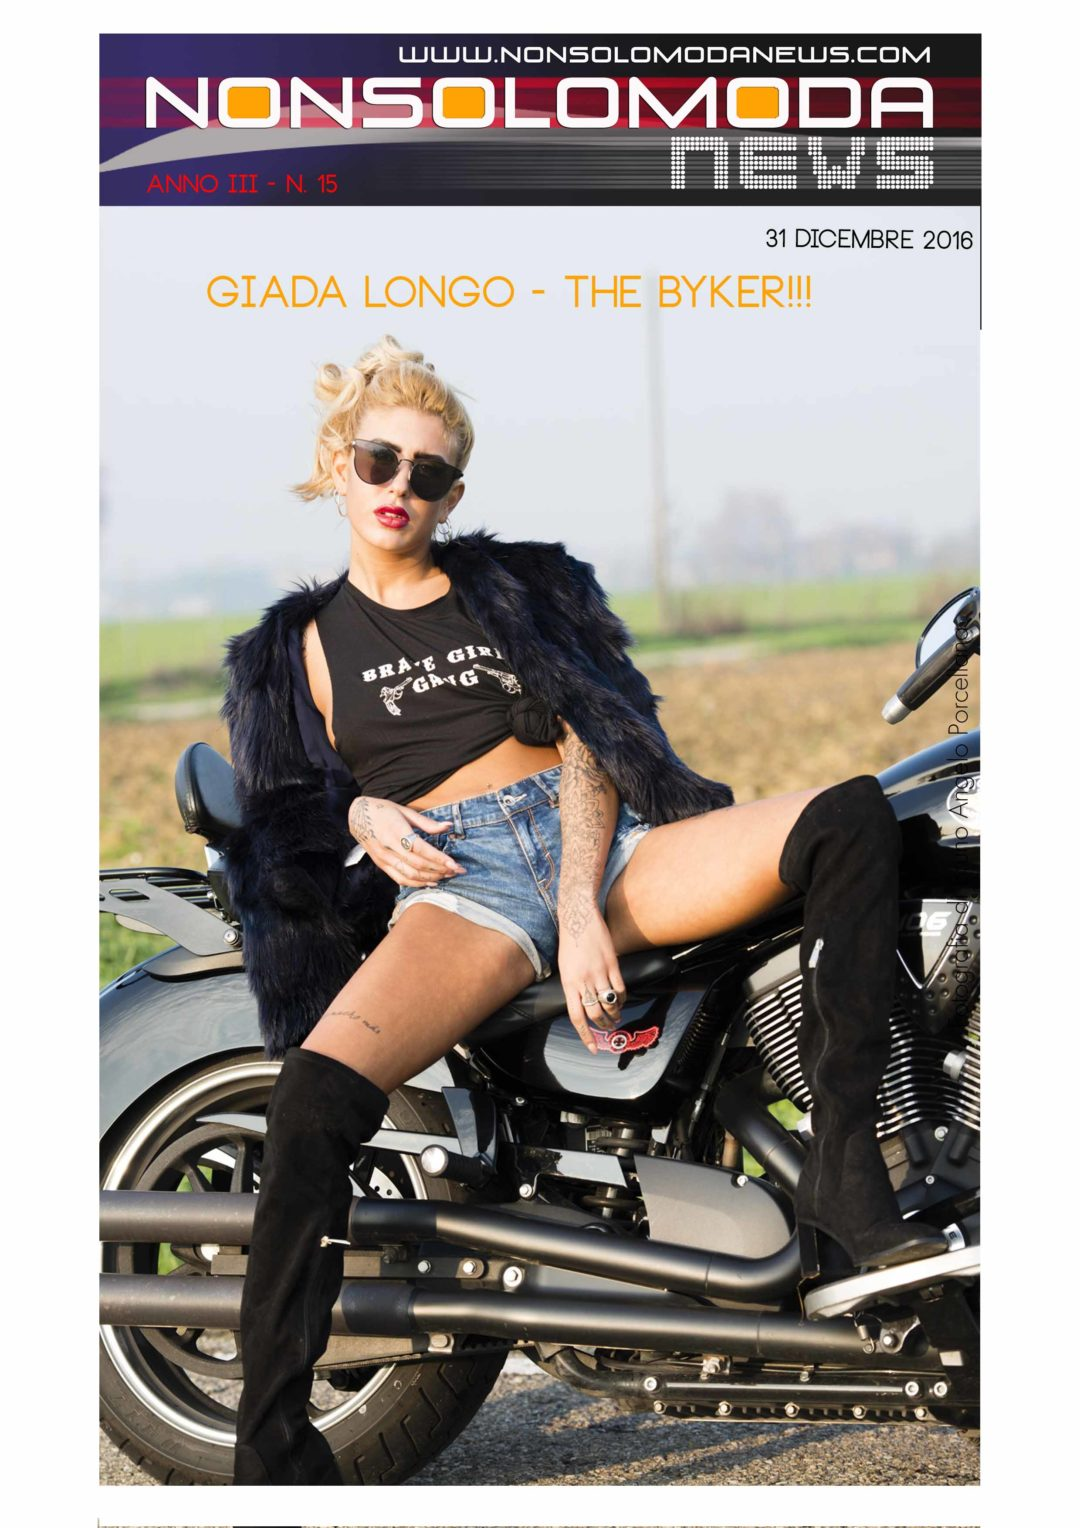 Nonsolomodanews - Giada Longo - The biker